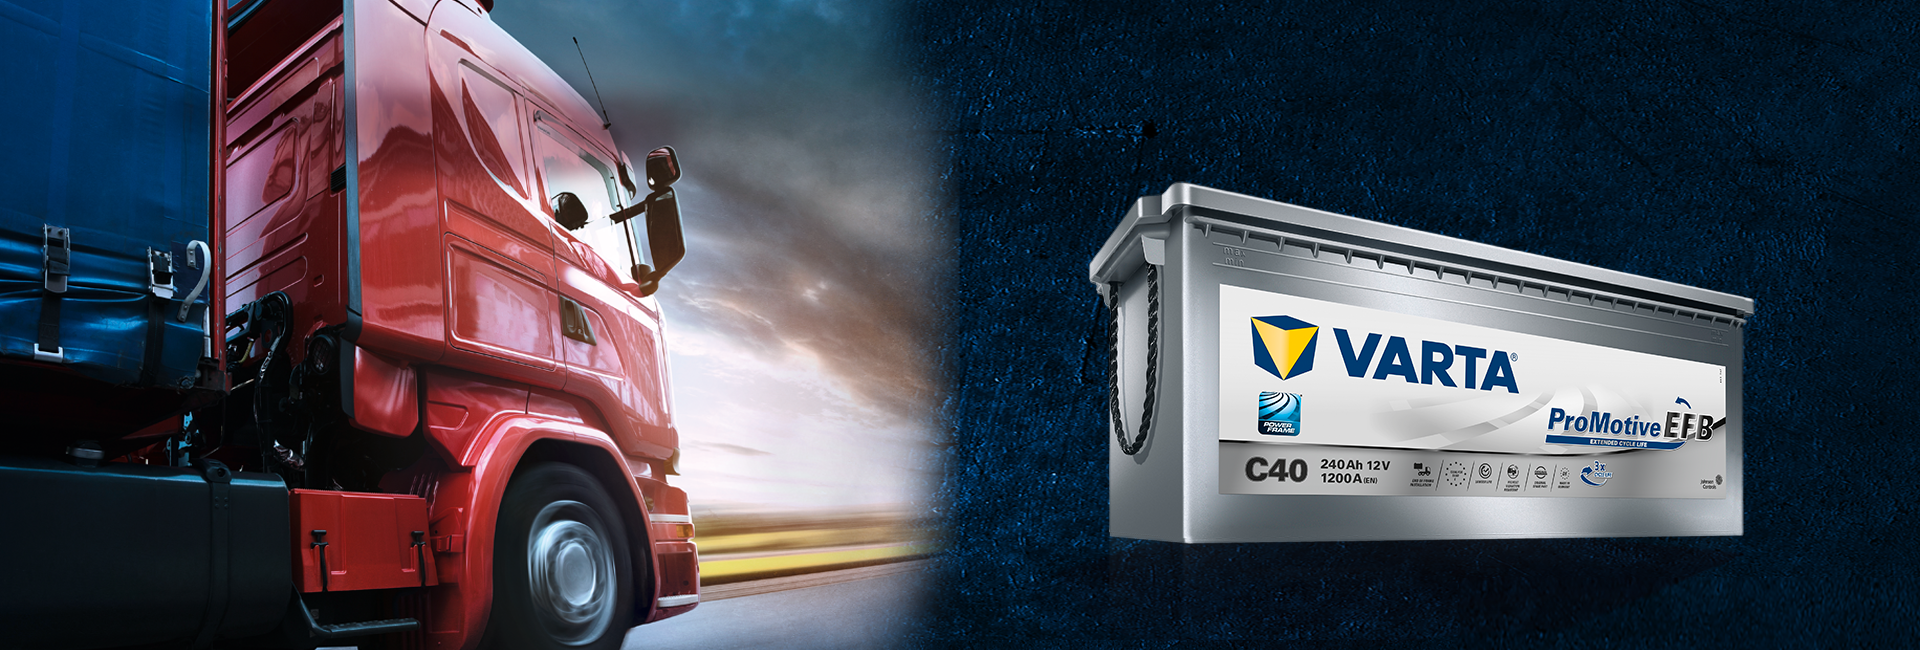 e18e4aff57e6 VARTA® automotive batteries - Get your battery from the global ...